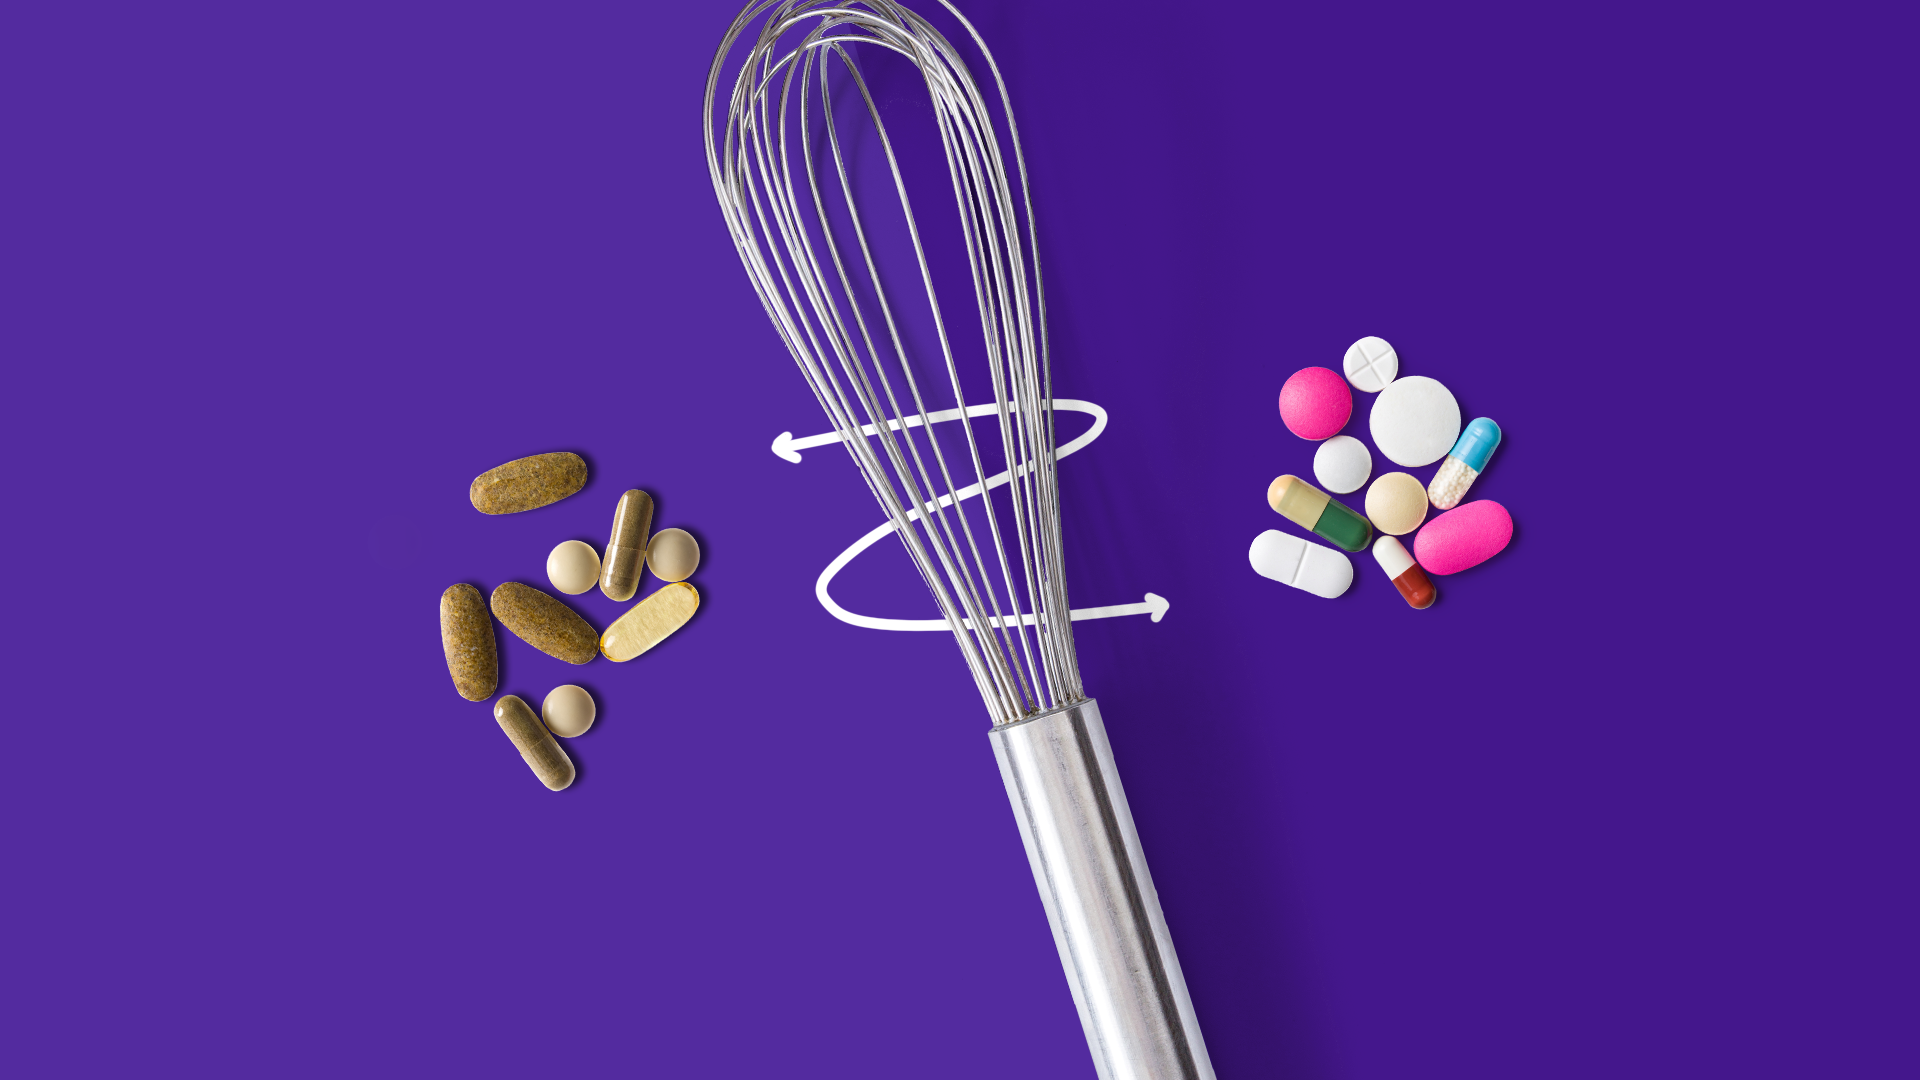 How supplements can interact with medications